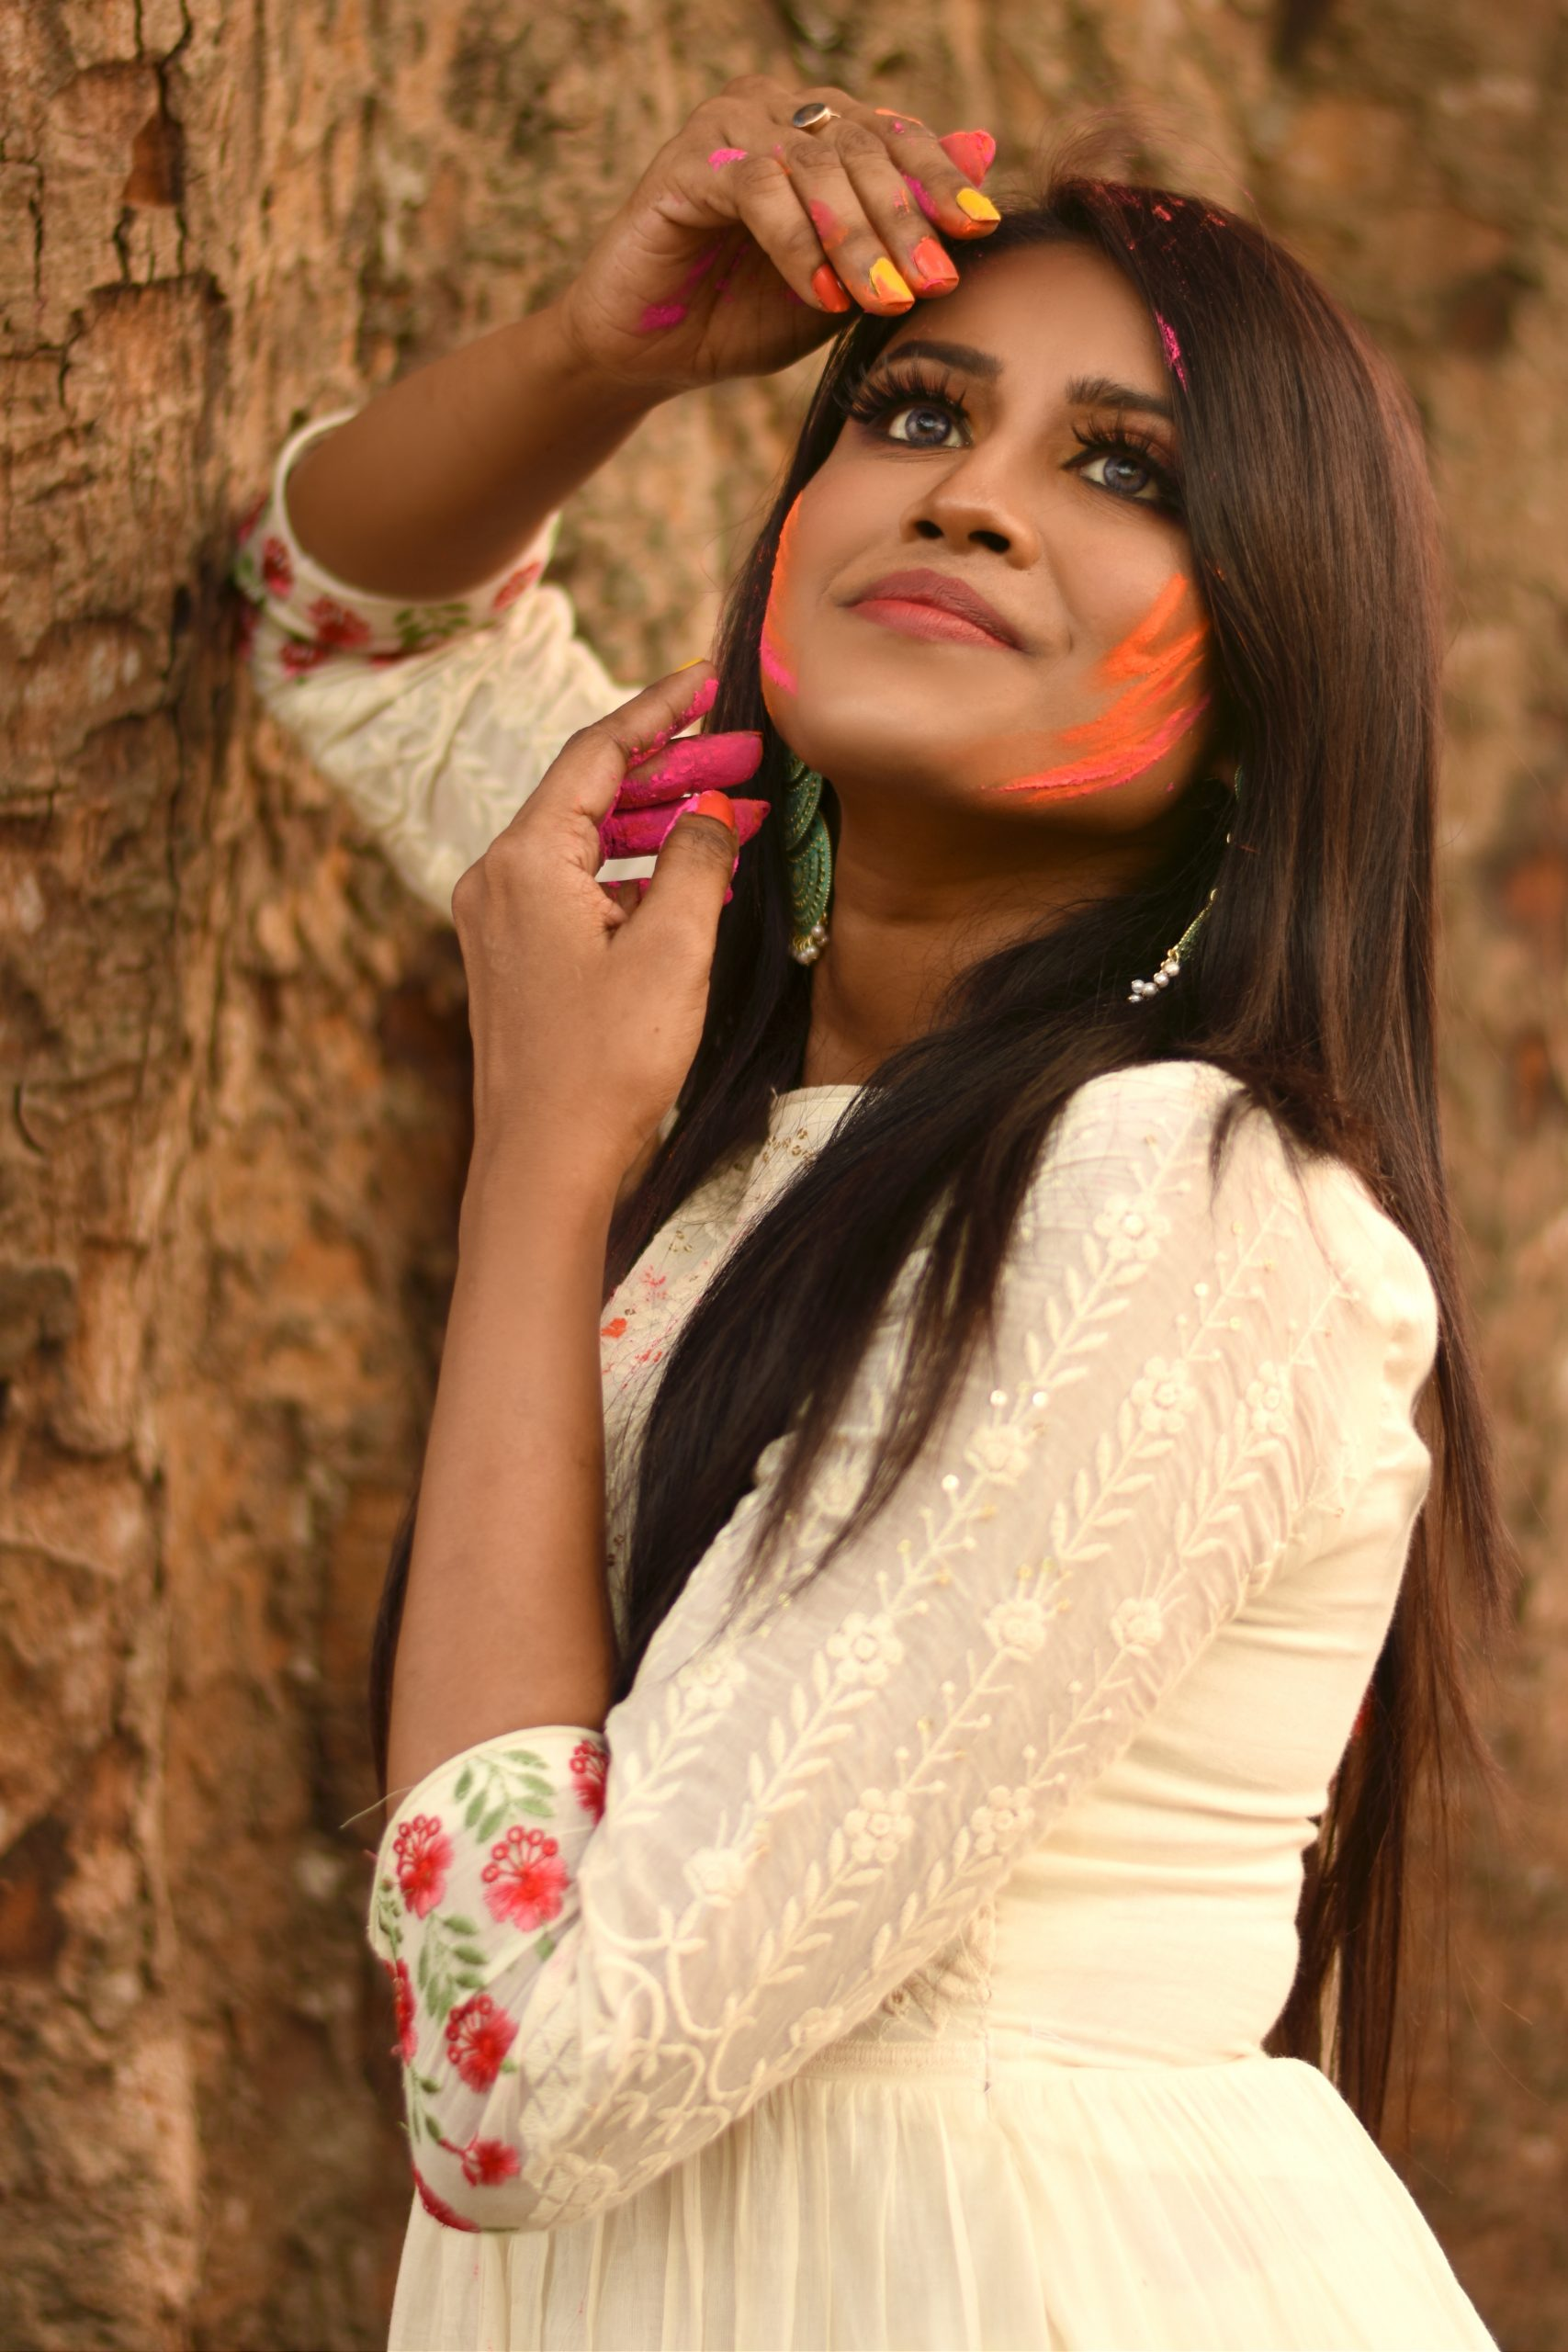 A girl celebrating Holi festival